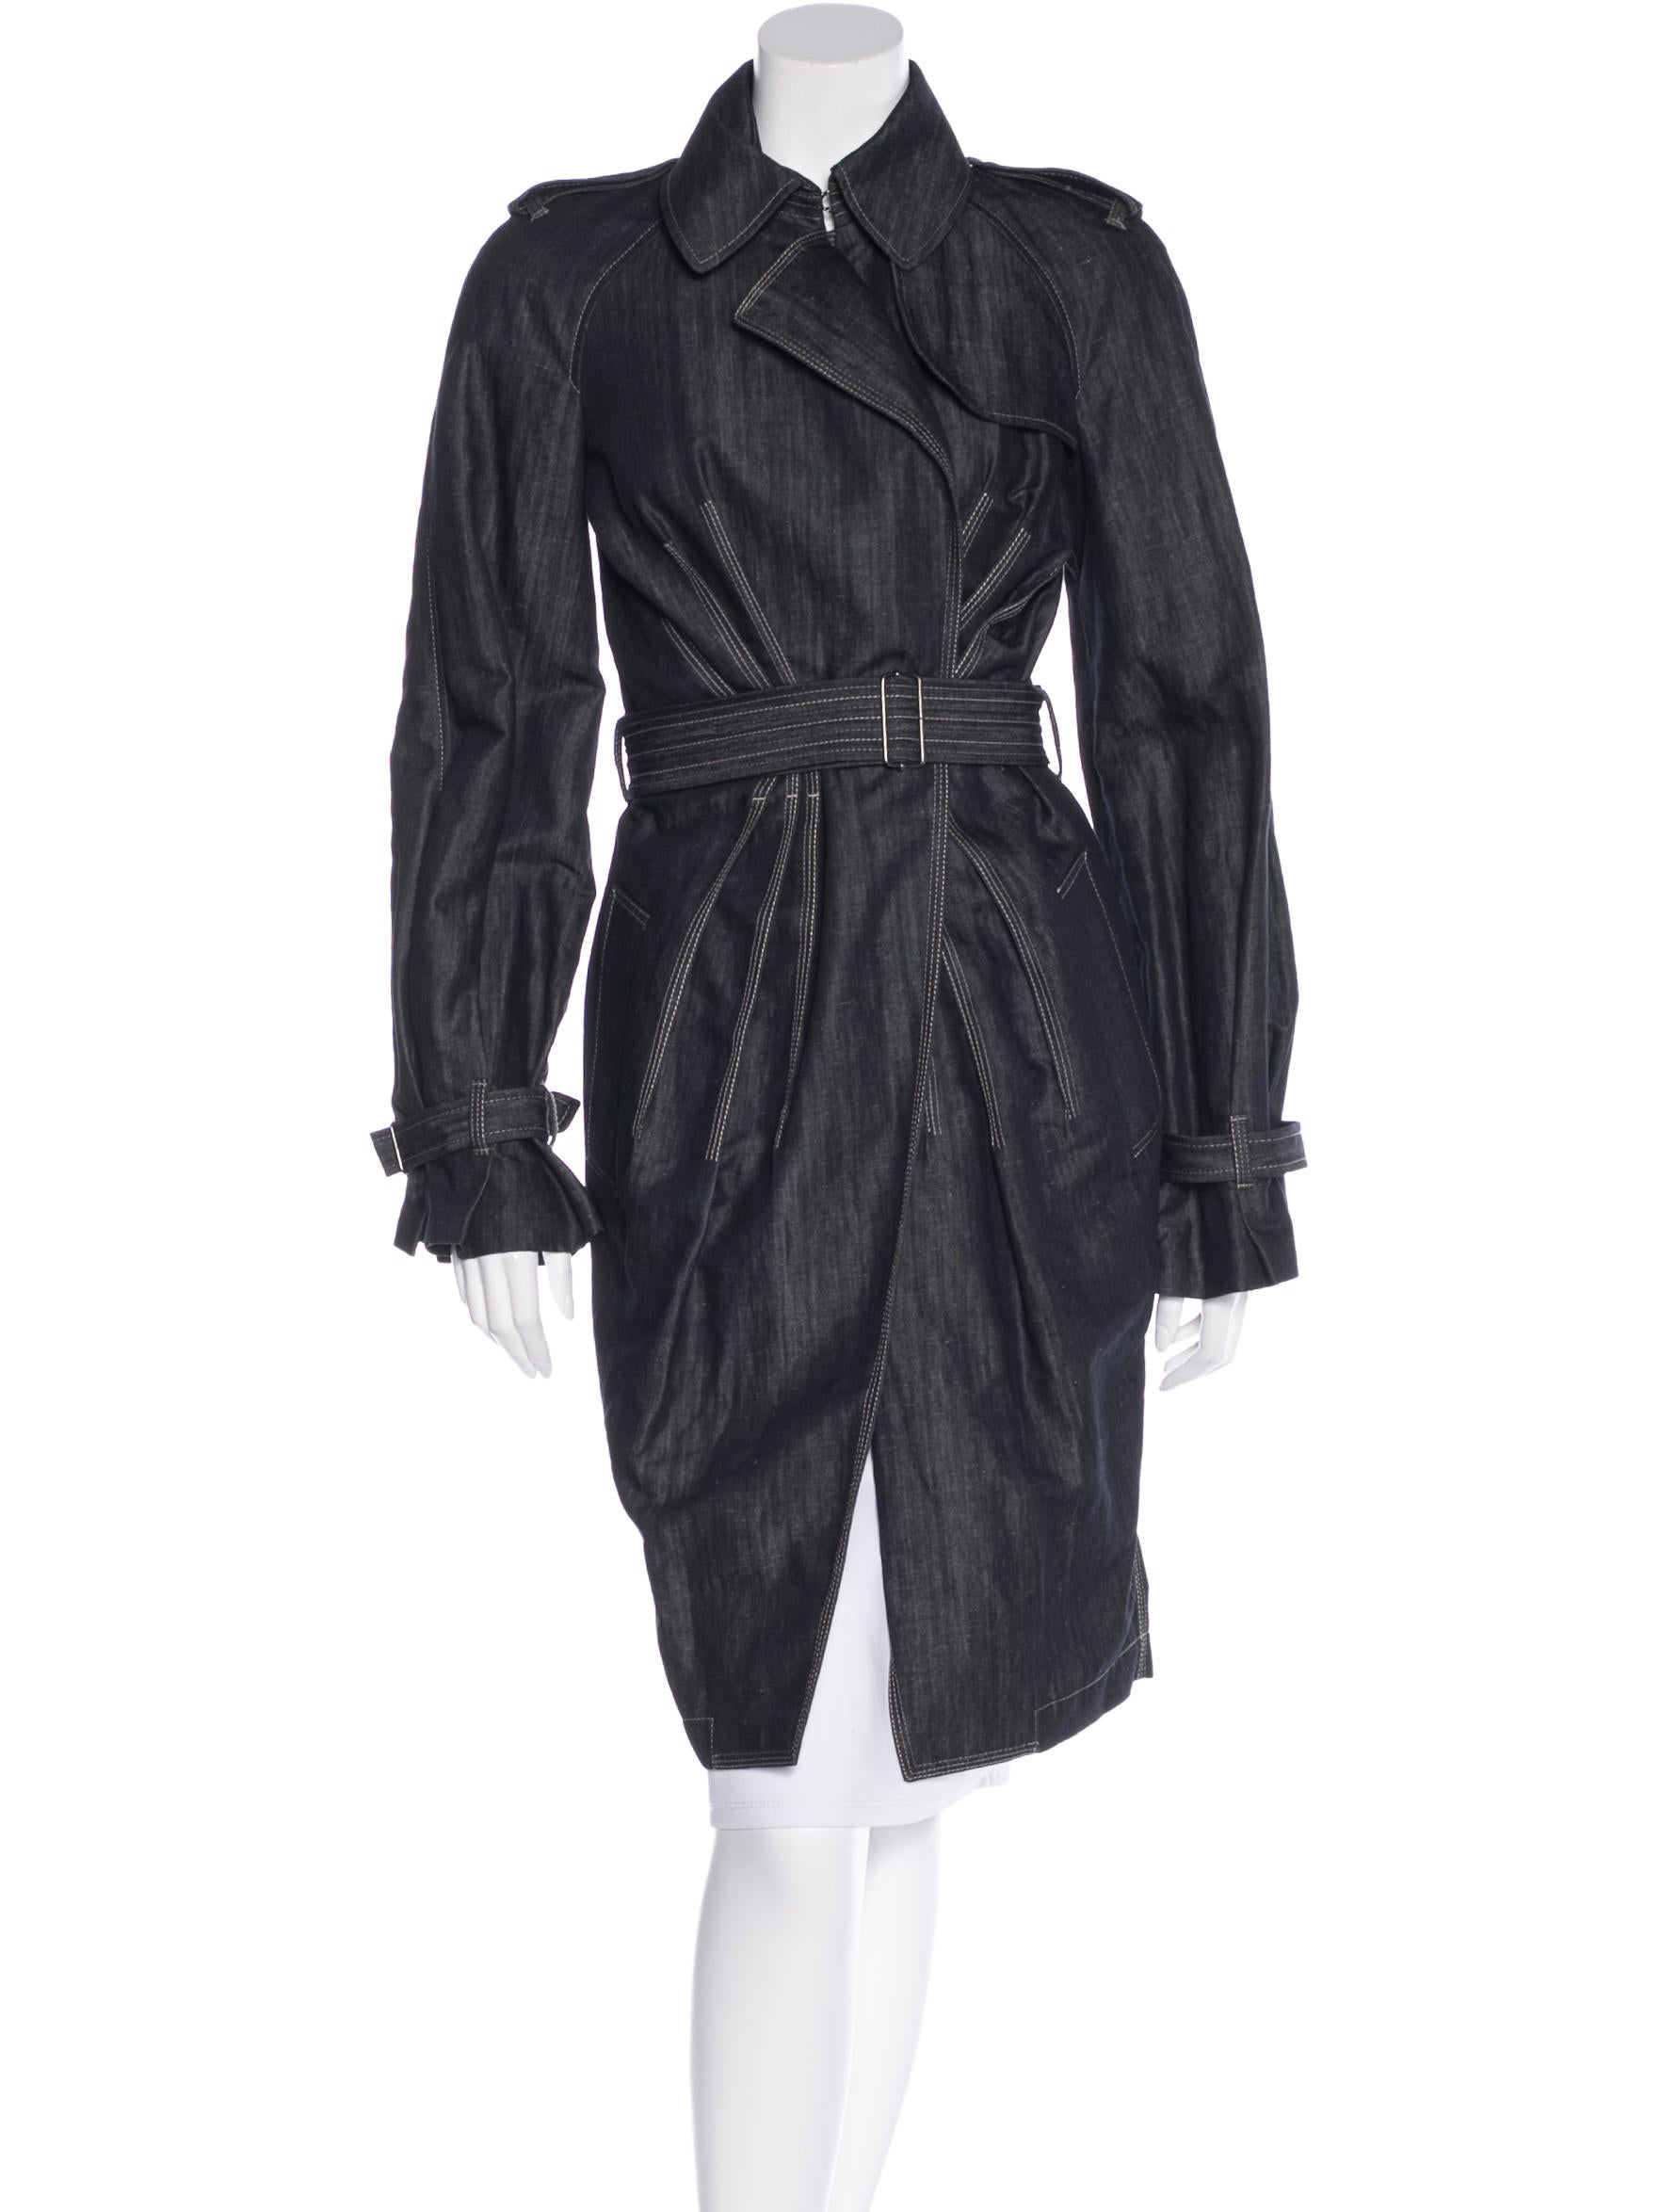 Jean paul gaultier lightweight trench coat clothing for Jean paul gaultier clothing